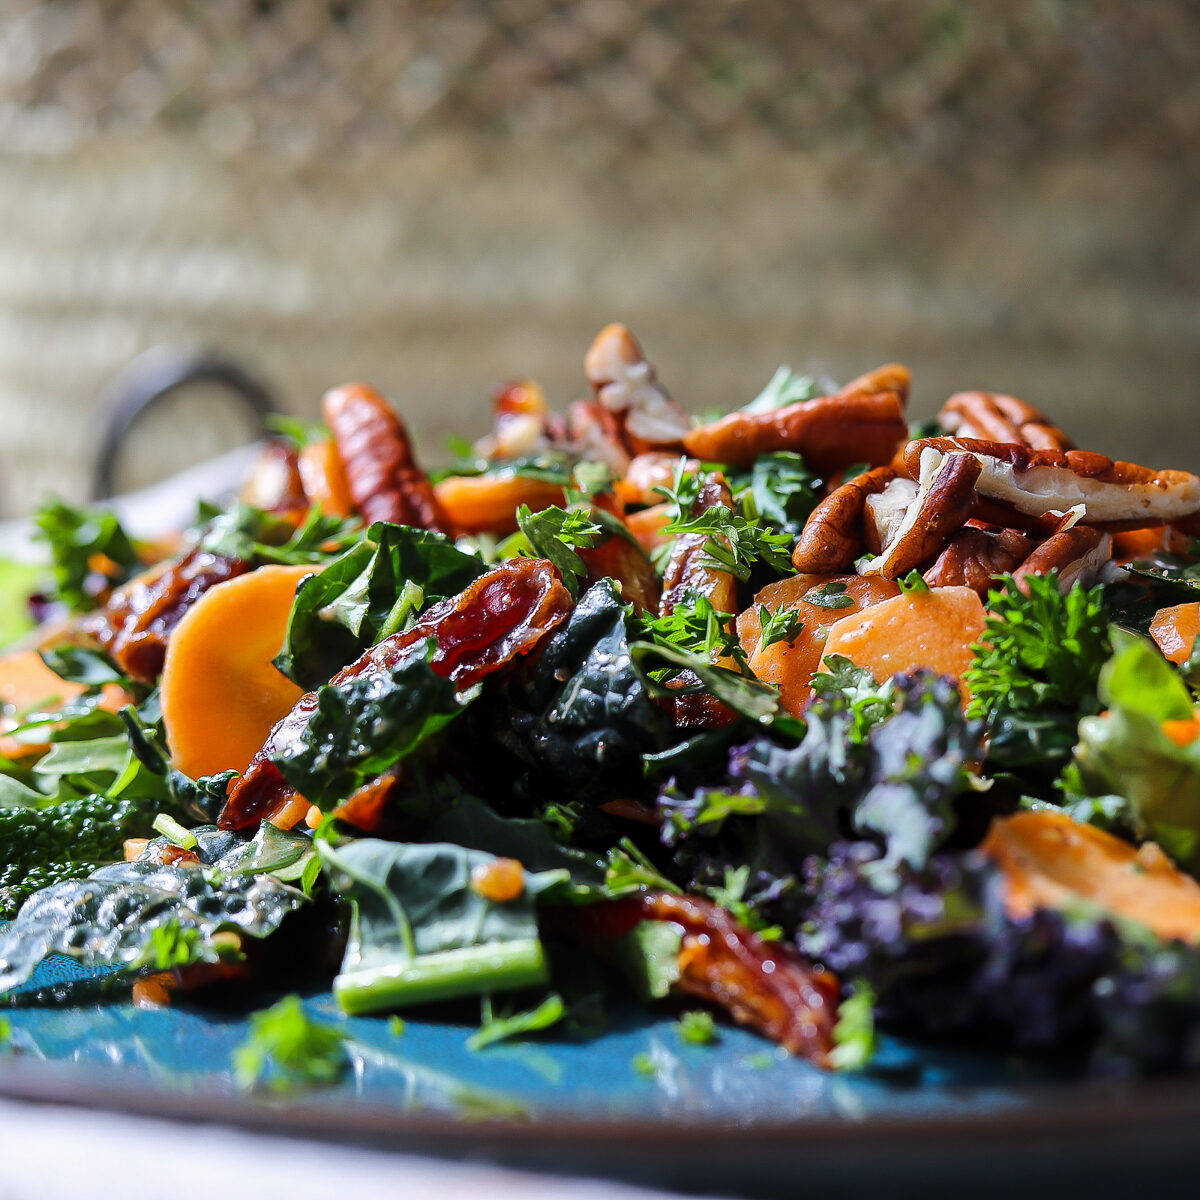 Date and carrot salad with kale on a blue plate